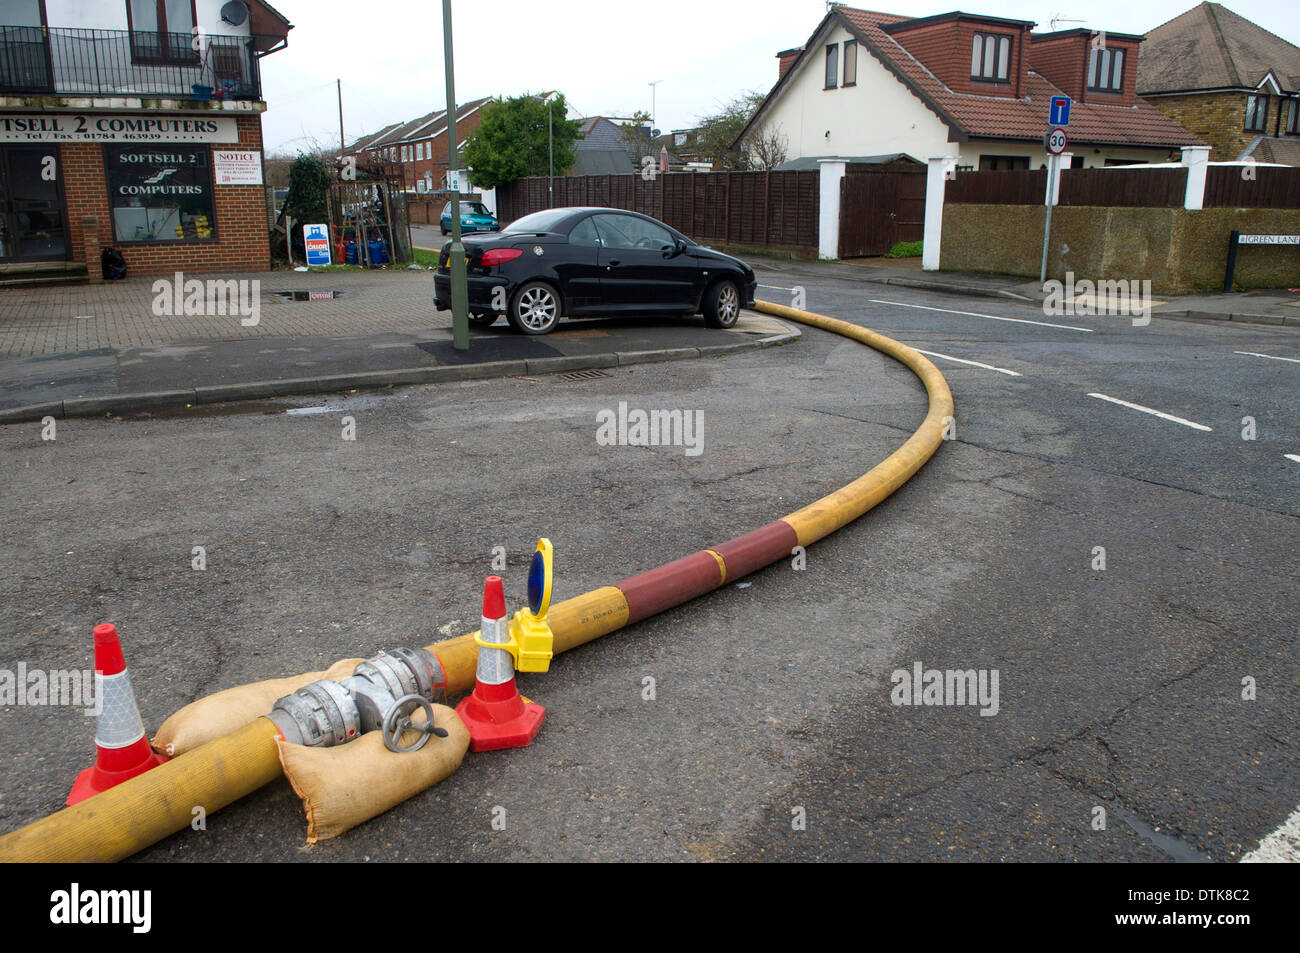 Flooded residential area and park in Staines. Water being pumped with yellow hosepipe. - Stock Image